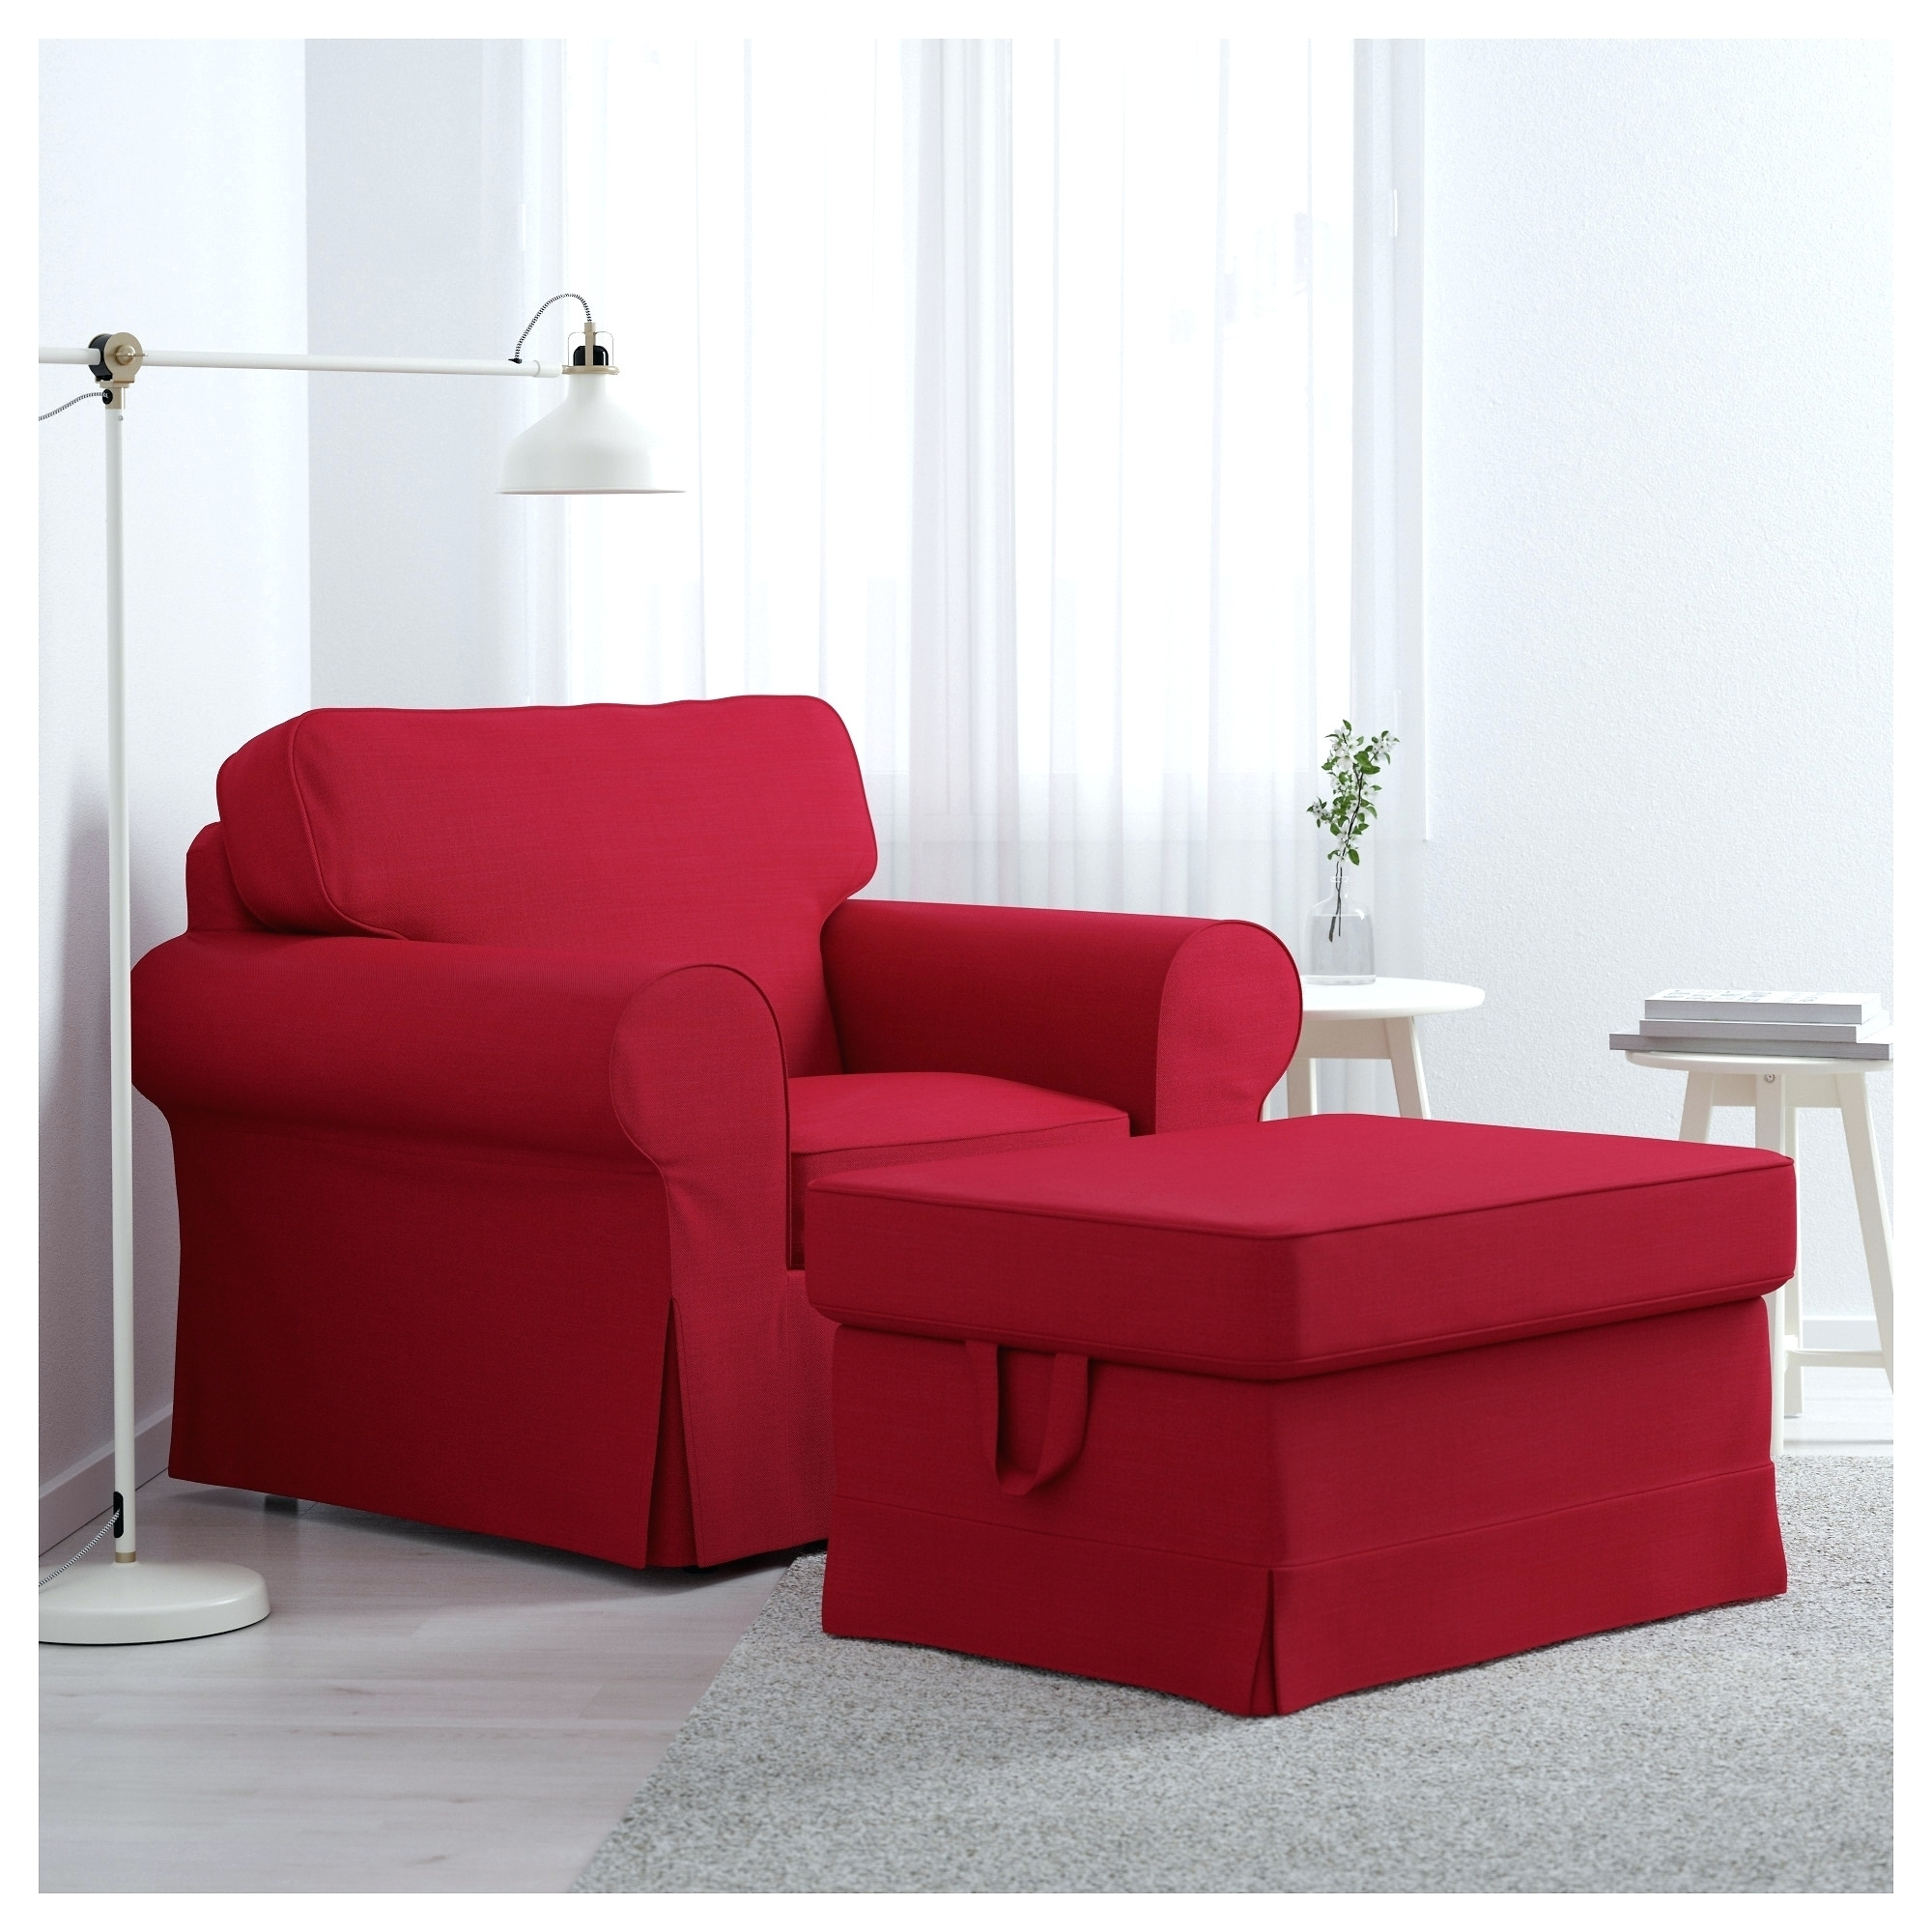 Most Recently Released Ideas Of Extra Wide Chaise Lounge In Chaise Amusing Wide Chaise Within Extra Wide Chaise Lounges (View 9 of 15)